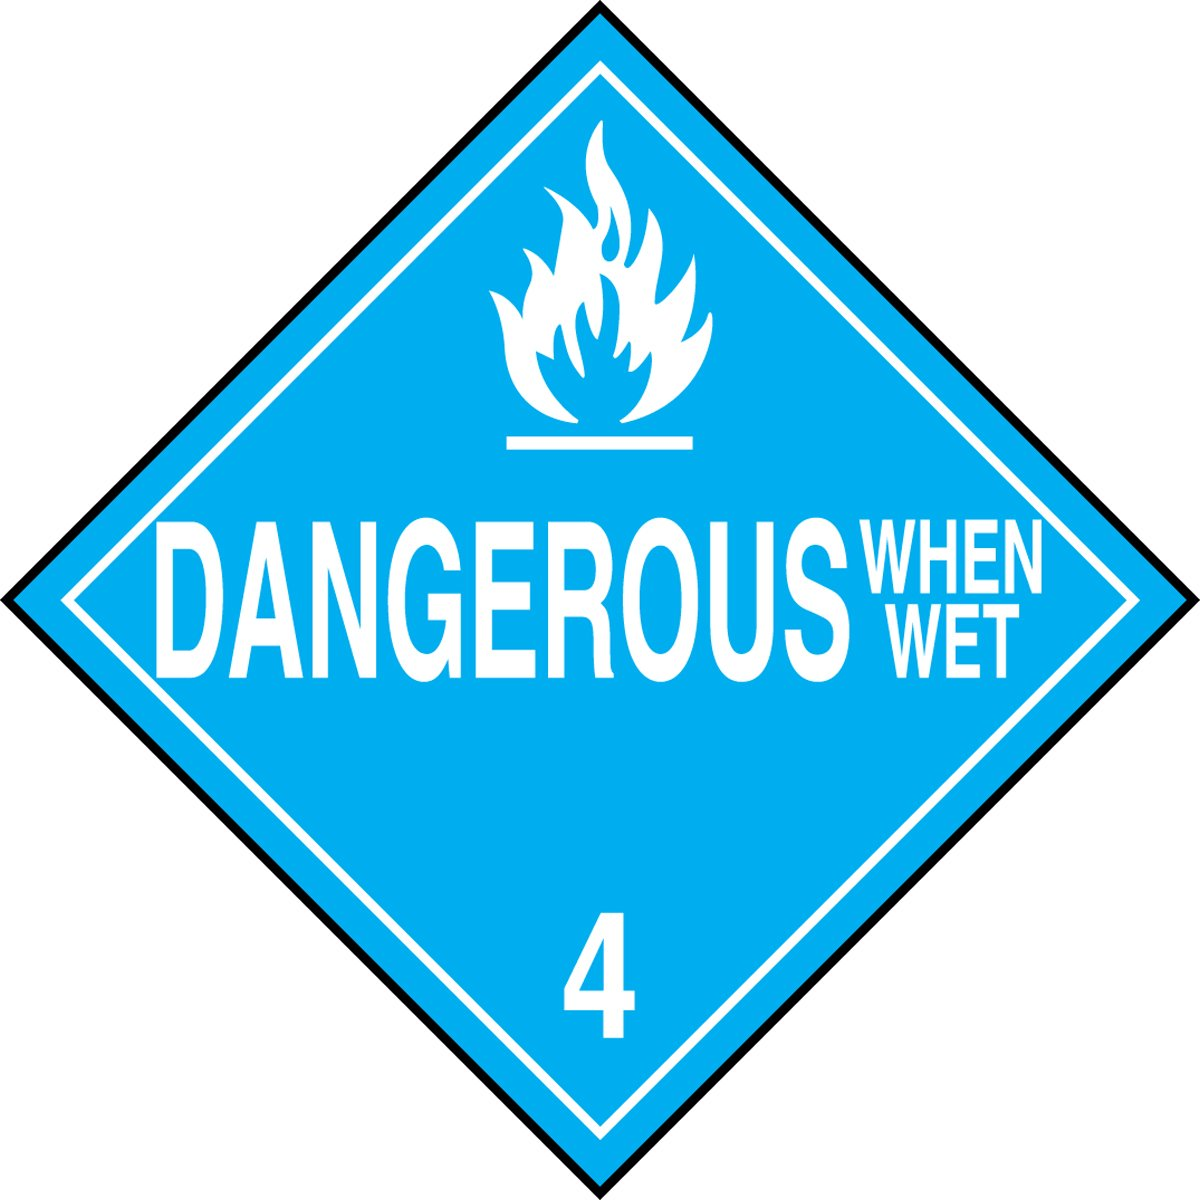 Pack of 100 LegendDANGEROUS WHEN WET 4 with Graphic 10-3//4 Width x 10-3//4 Length Accuform Signs 10-3//4 Width x 10-3//4 Length Accuform MPL402CT100 PF-Cardstock Hazard Class 4 DOT Placard LegendDANGEROUS WHEN WET 4 with Graphic White on Blue